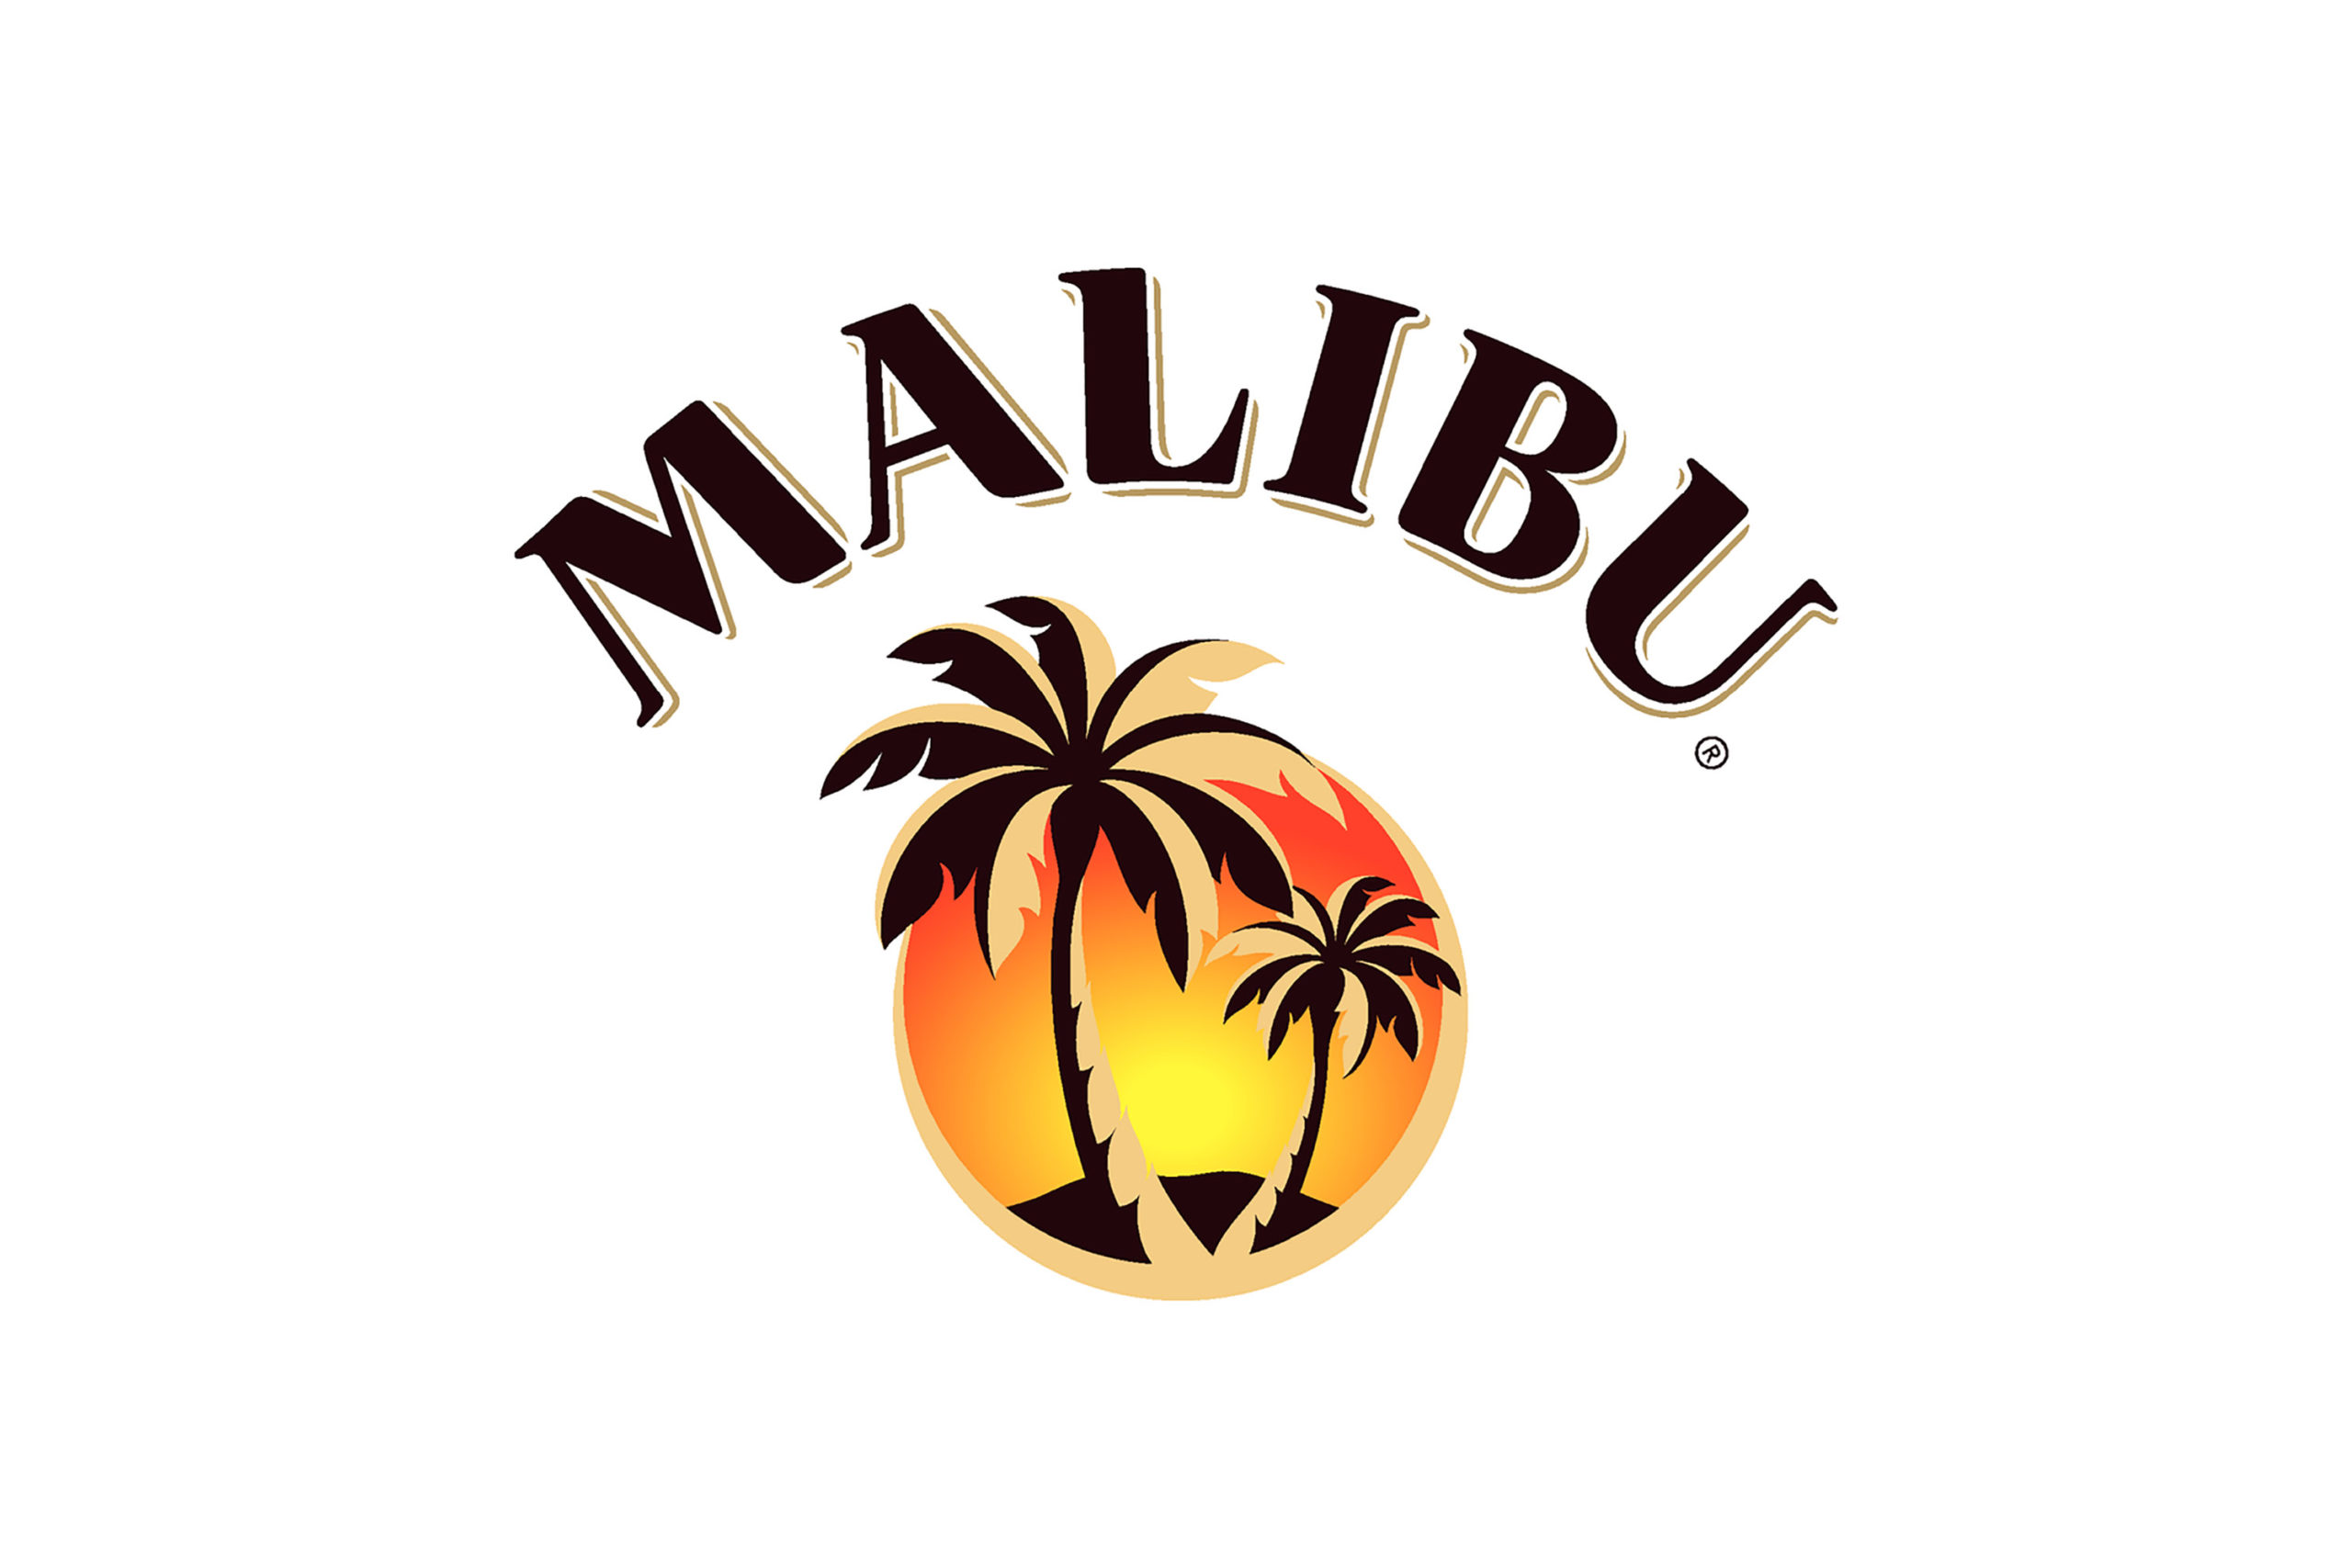 https://www.milkbar.jp/wp/wp-content/uploads/2020/08/drink_malibu-scaled.jpg